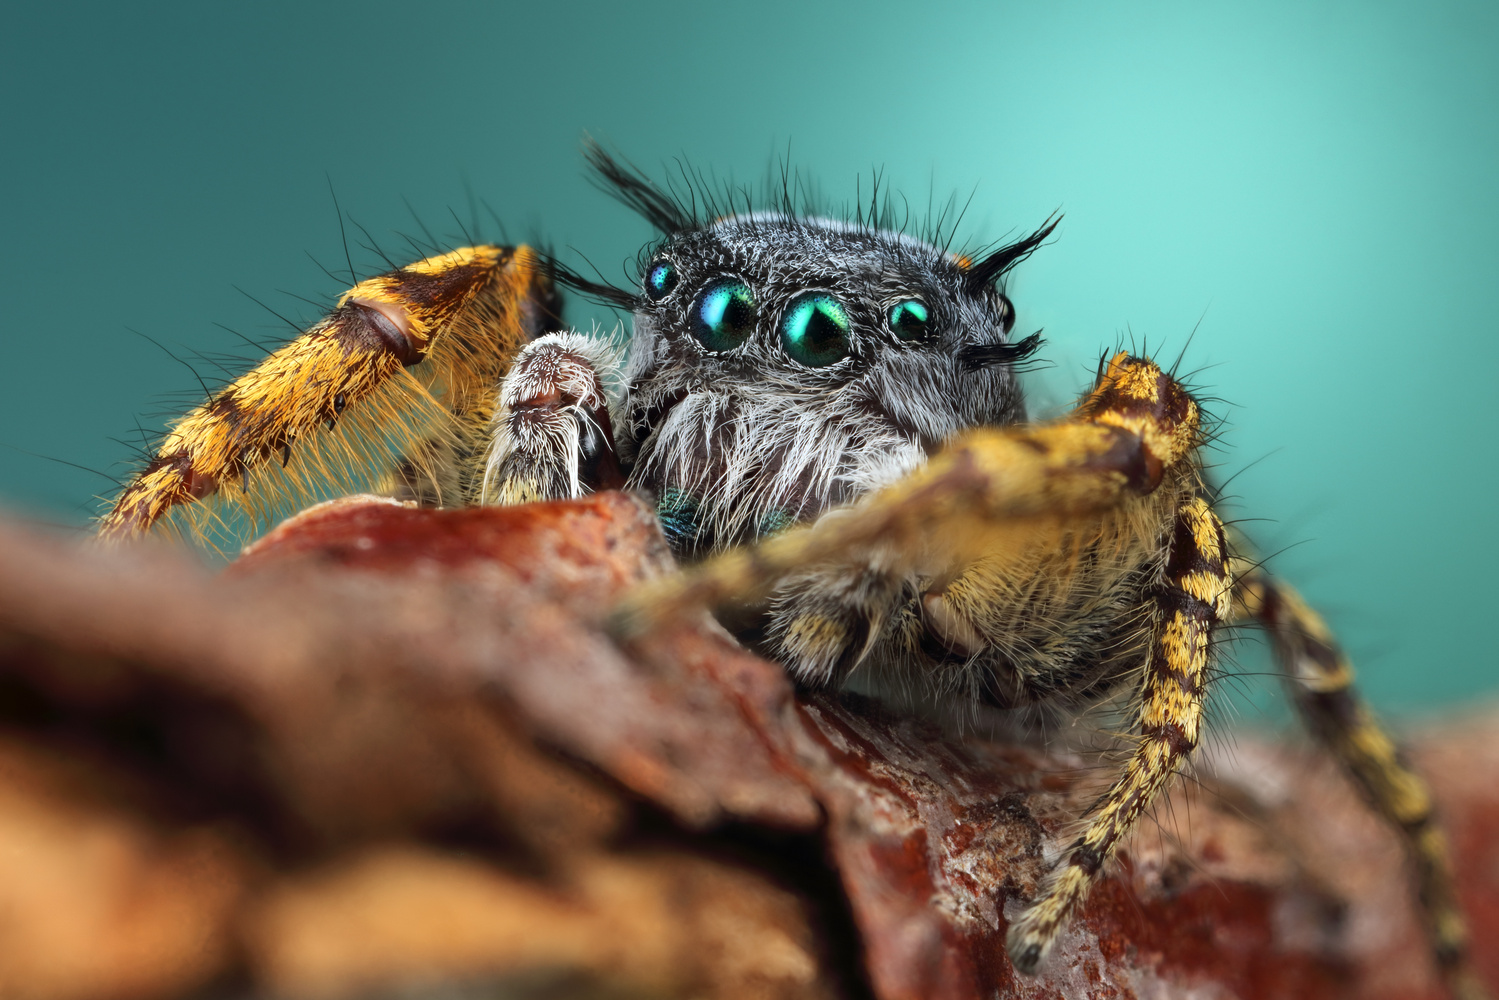 Male Phidippus mystaceous  by Andres Moline